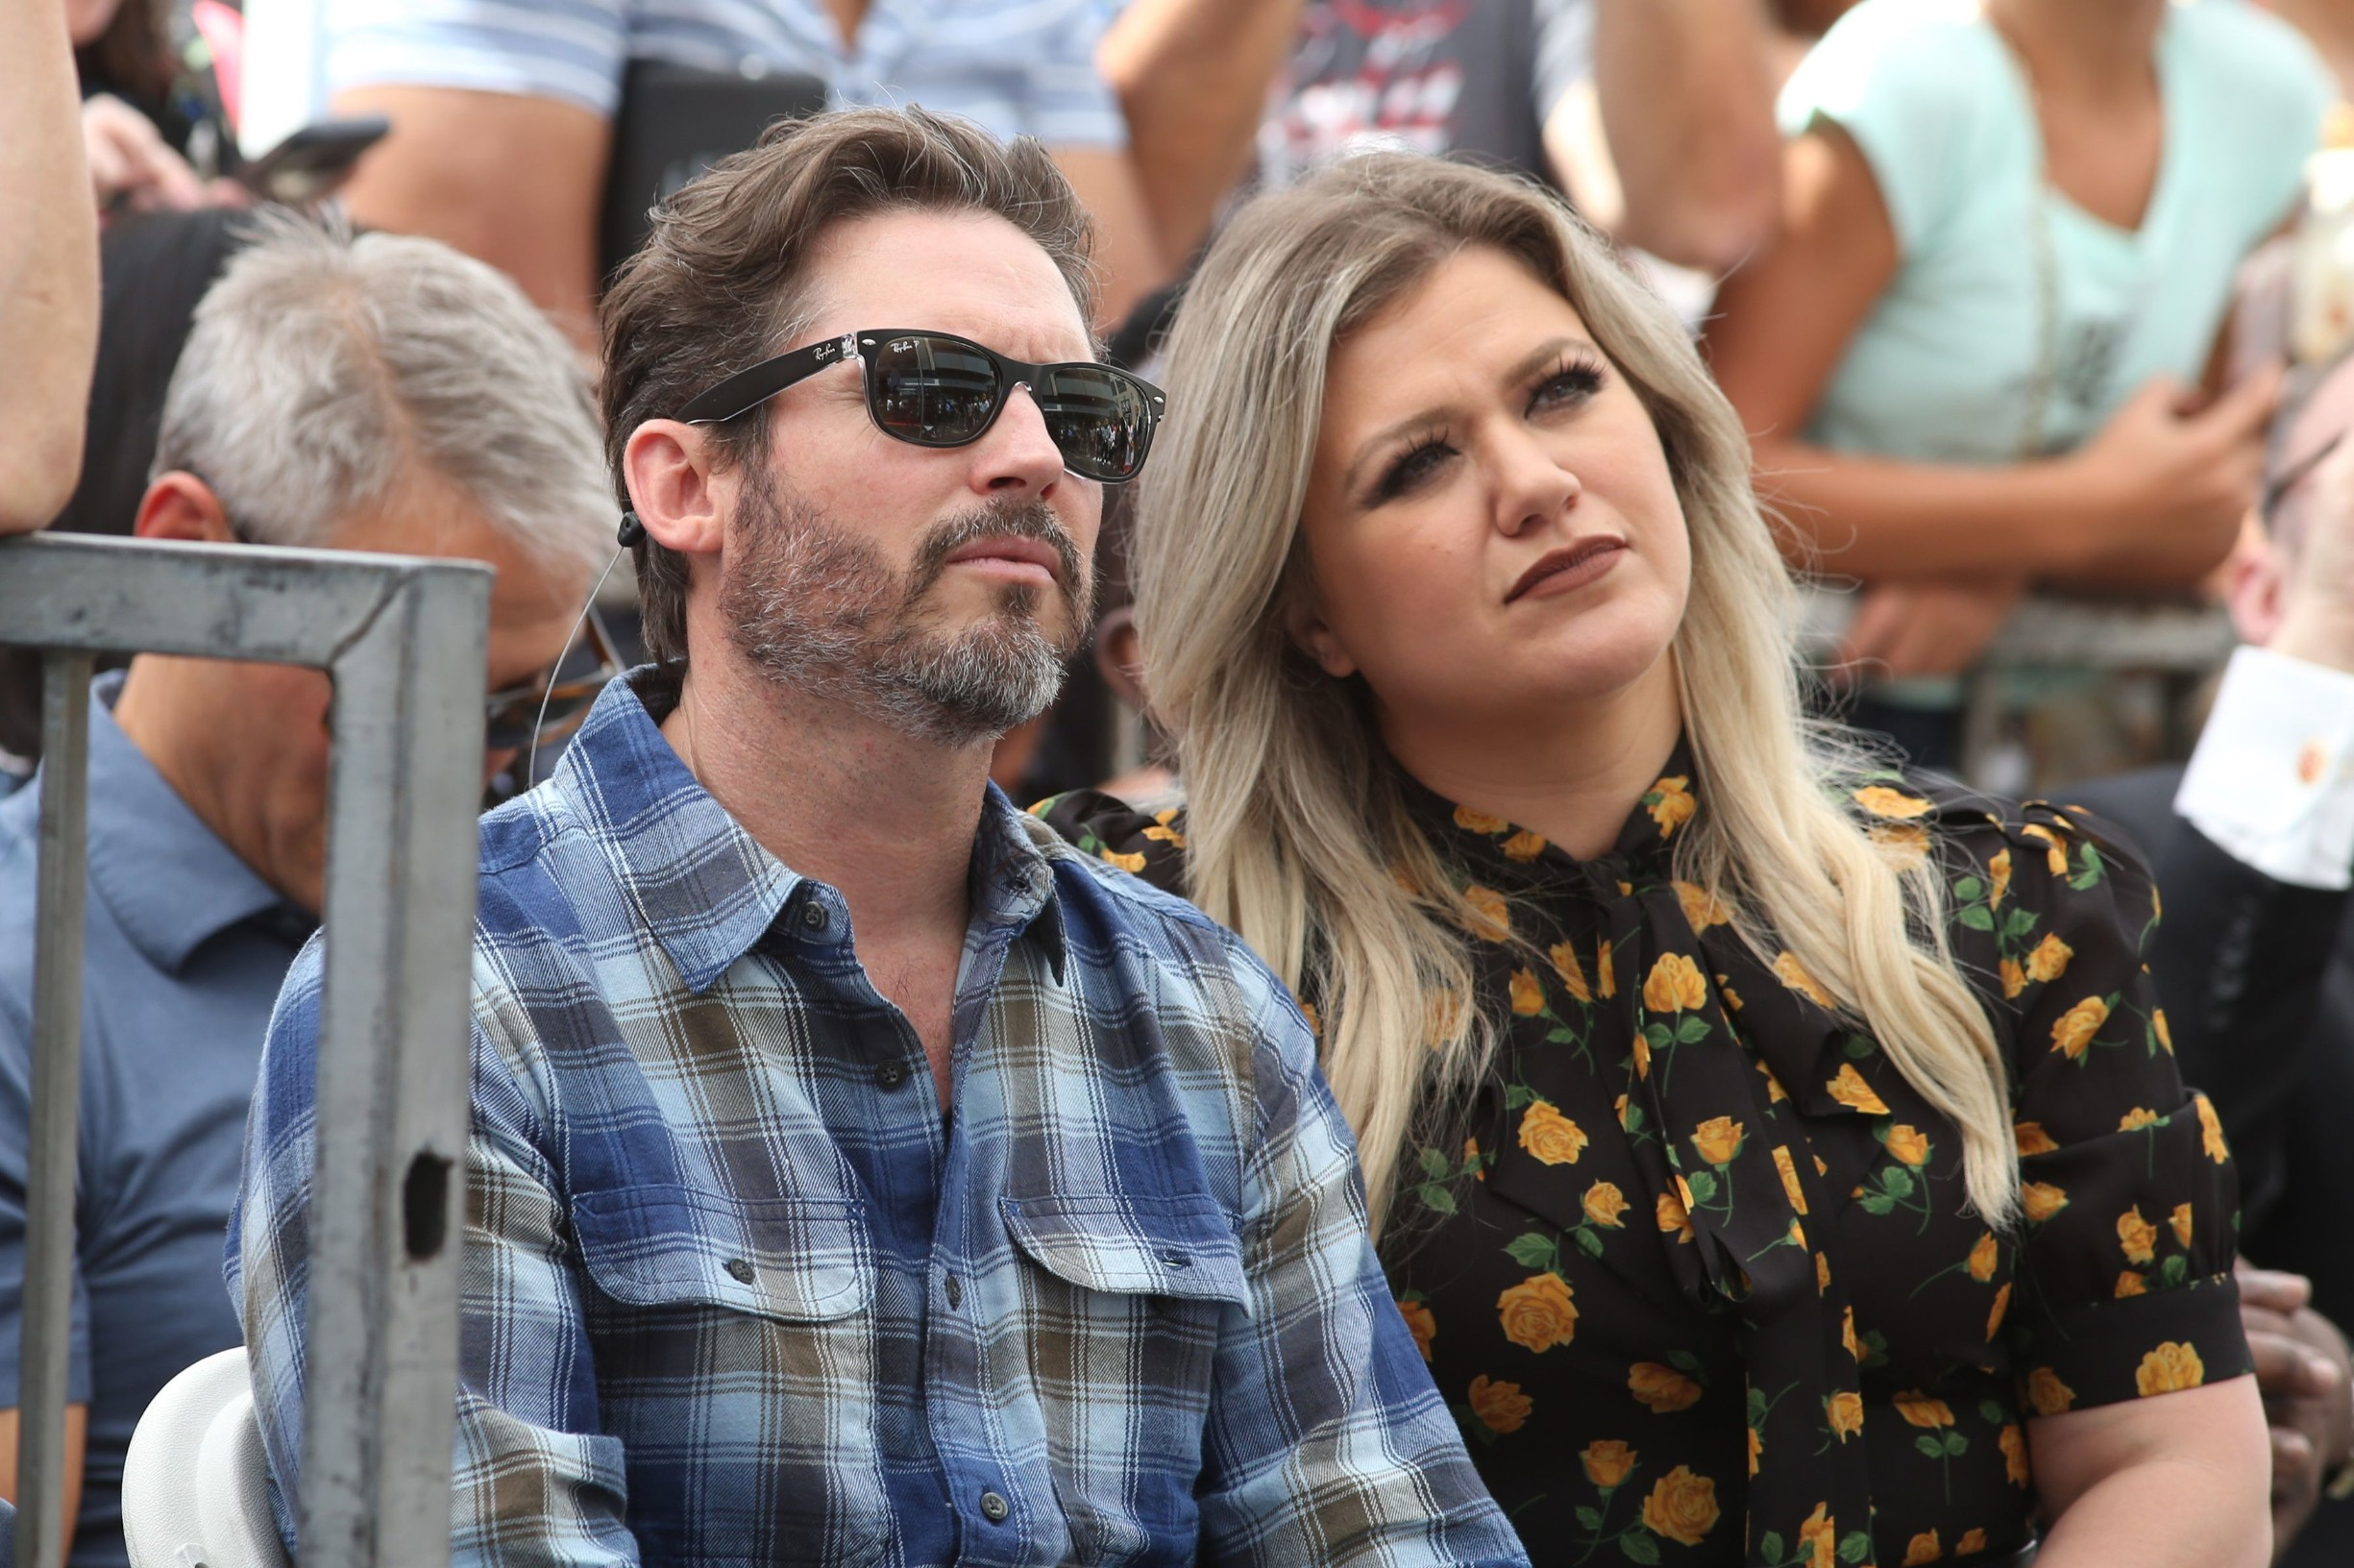 Brandon Blackstock and Kelly Clarkson Simon Cowell honored with a Star on the Hollywood Walk of Fame, Los Angeles, USA - 22 Aug 2018,Image: 383656853, License: Rights-managed, Restrictions: , Model Release: no, Credit line: MediaPunch / Shutterstock Editorial / Profimedia